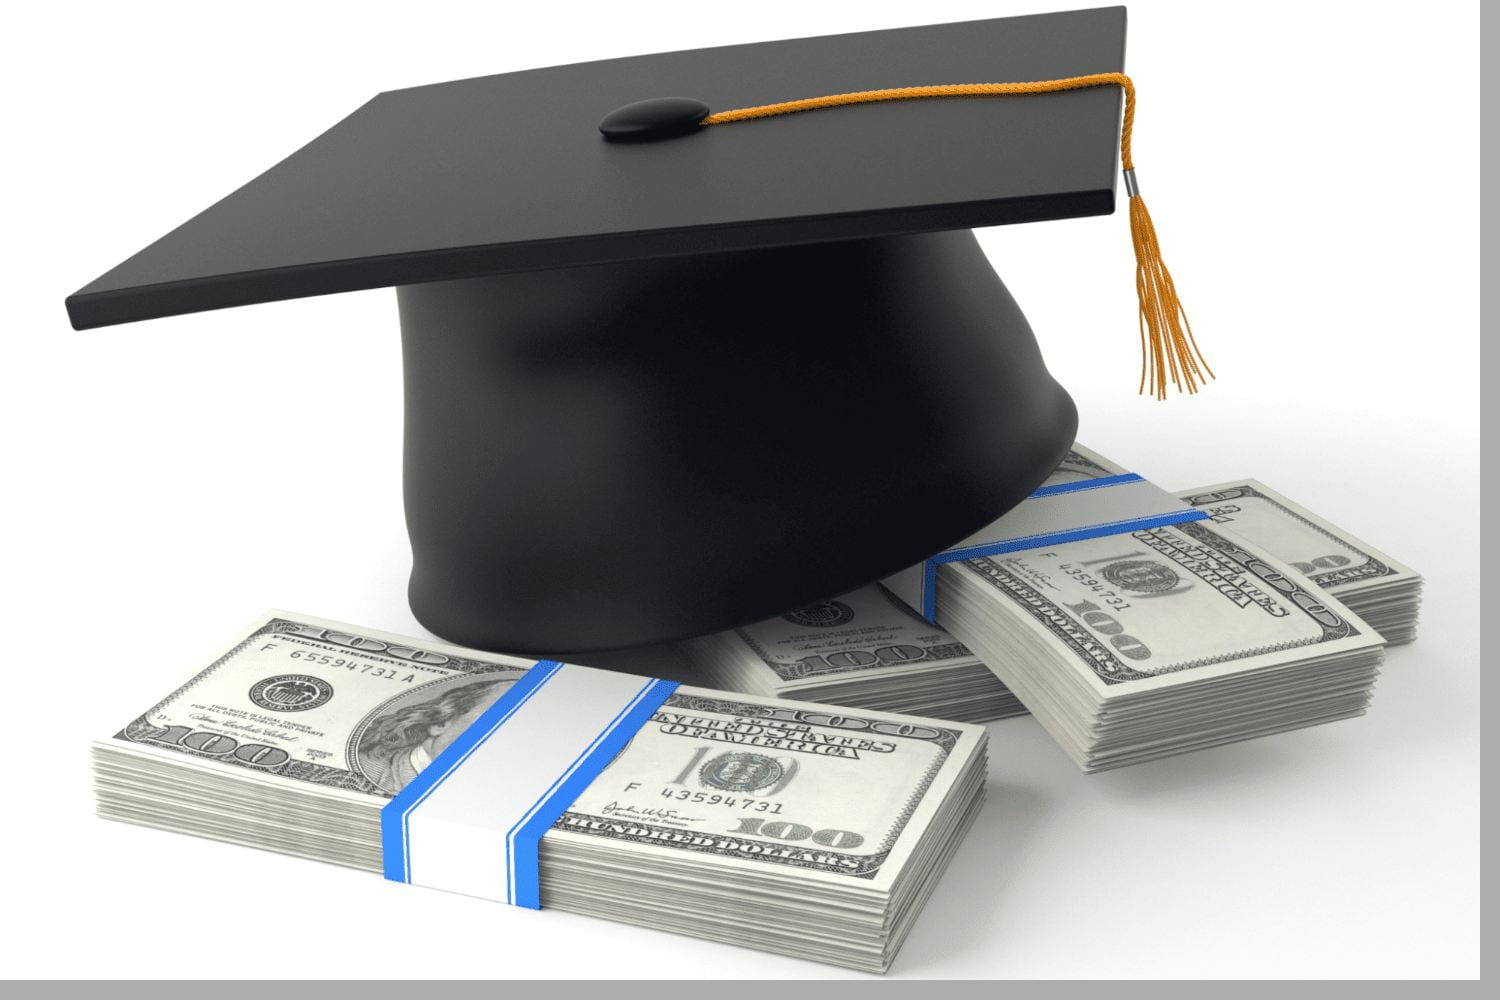 Image of a black graduation cap sitting on top of 3 bands of money to represent college scholarships